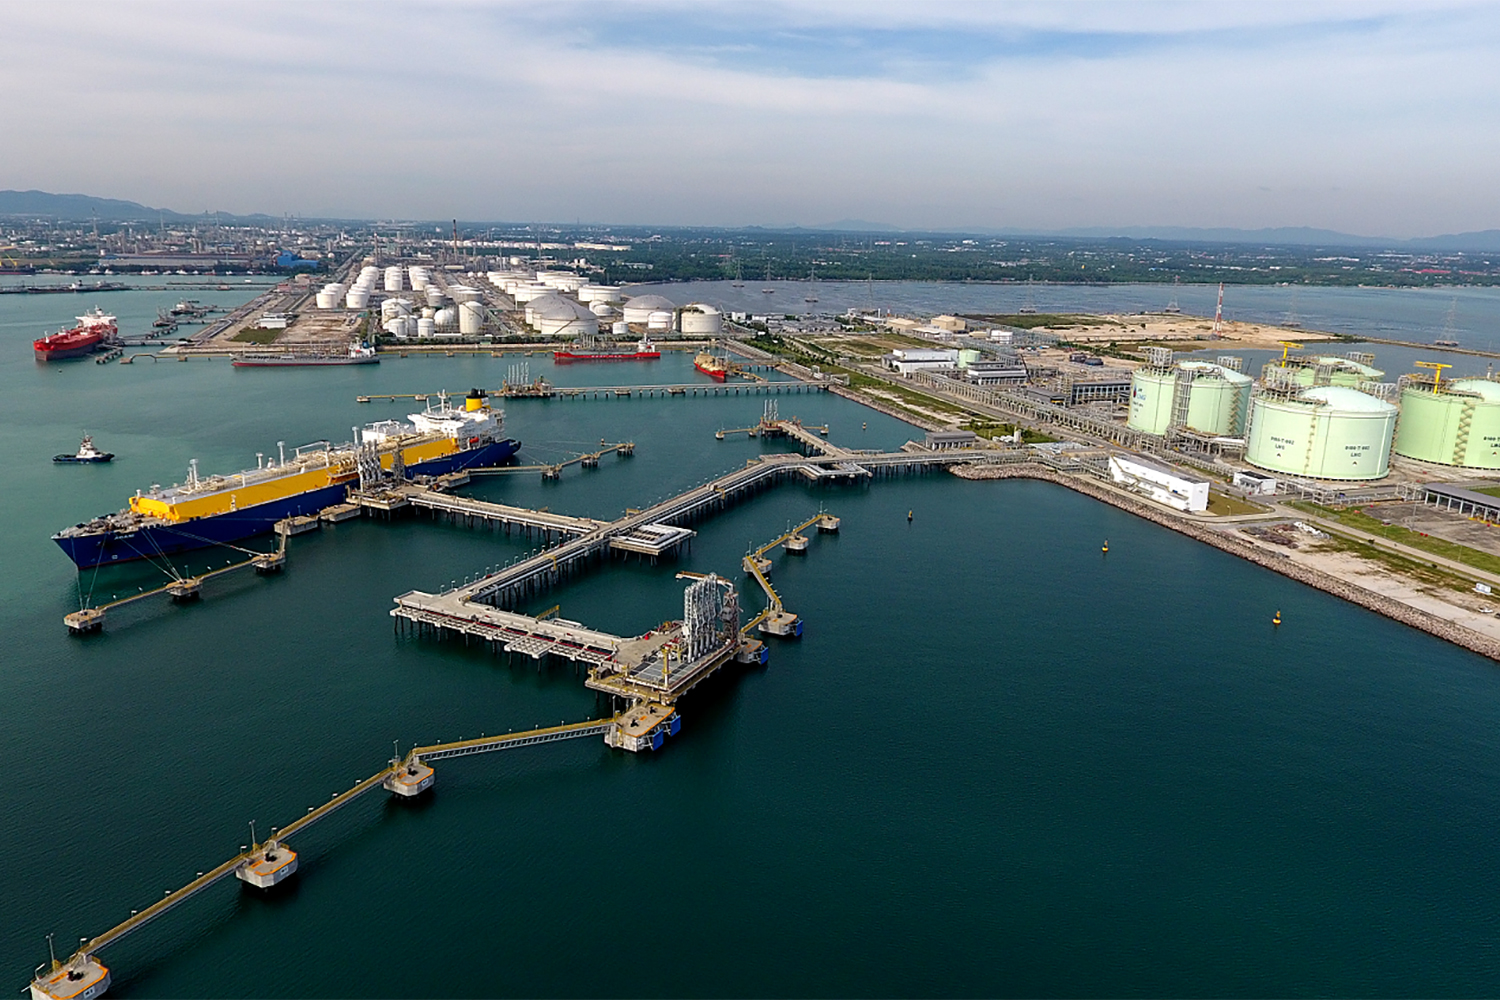 The LNG receiving terminal operated by PTT Plc at Map Ta Phut in Rayong is the country's only gas import site. PTT aims to make the terminal Southeast Asia's trading hub for liquefied natural gas. Photo courtesy of PTT Plc